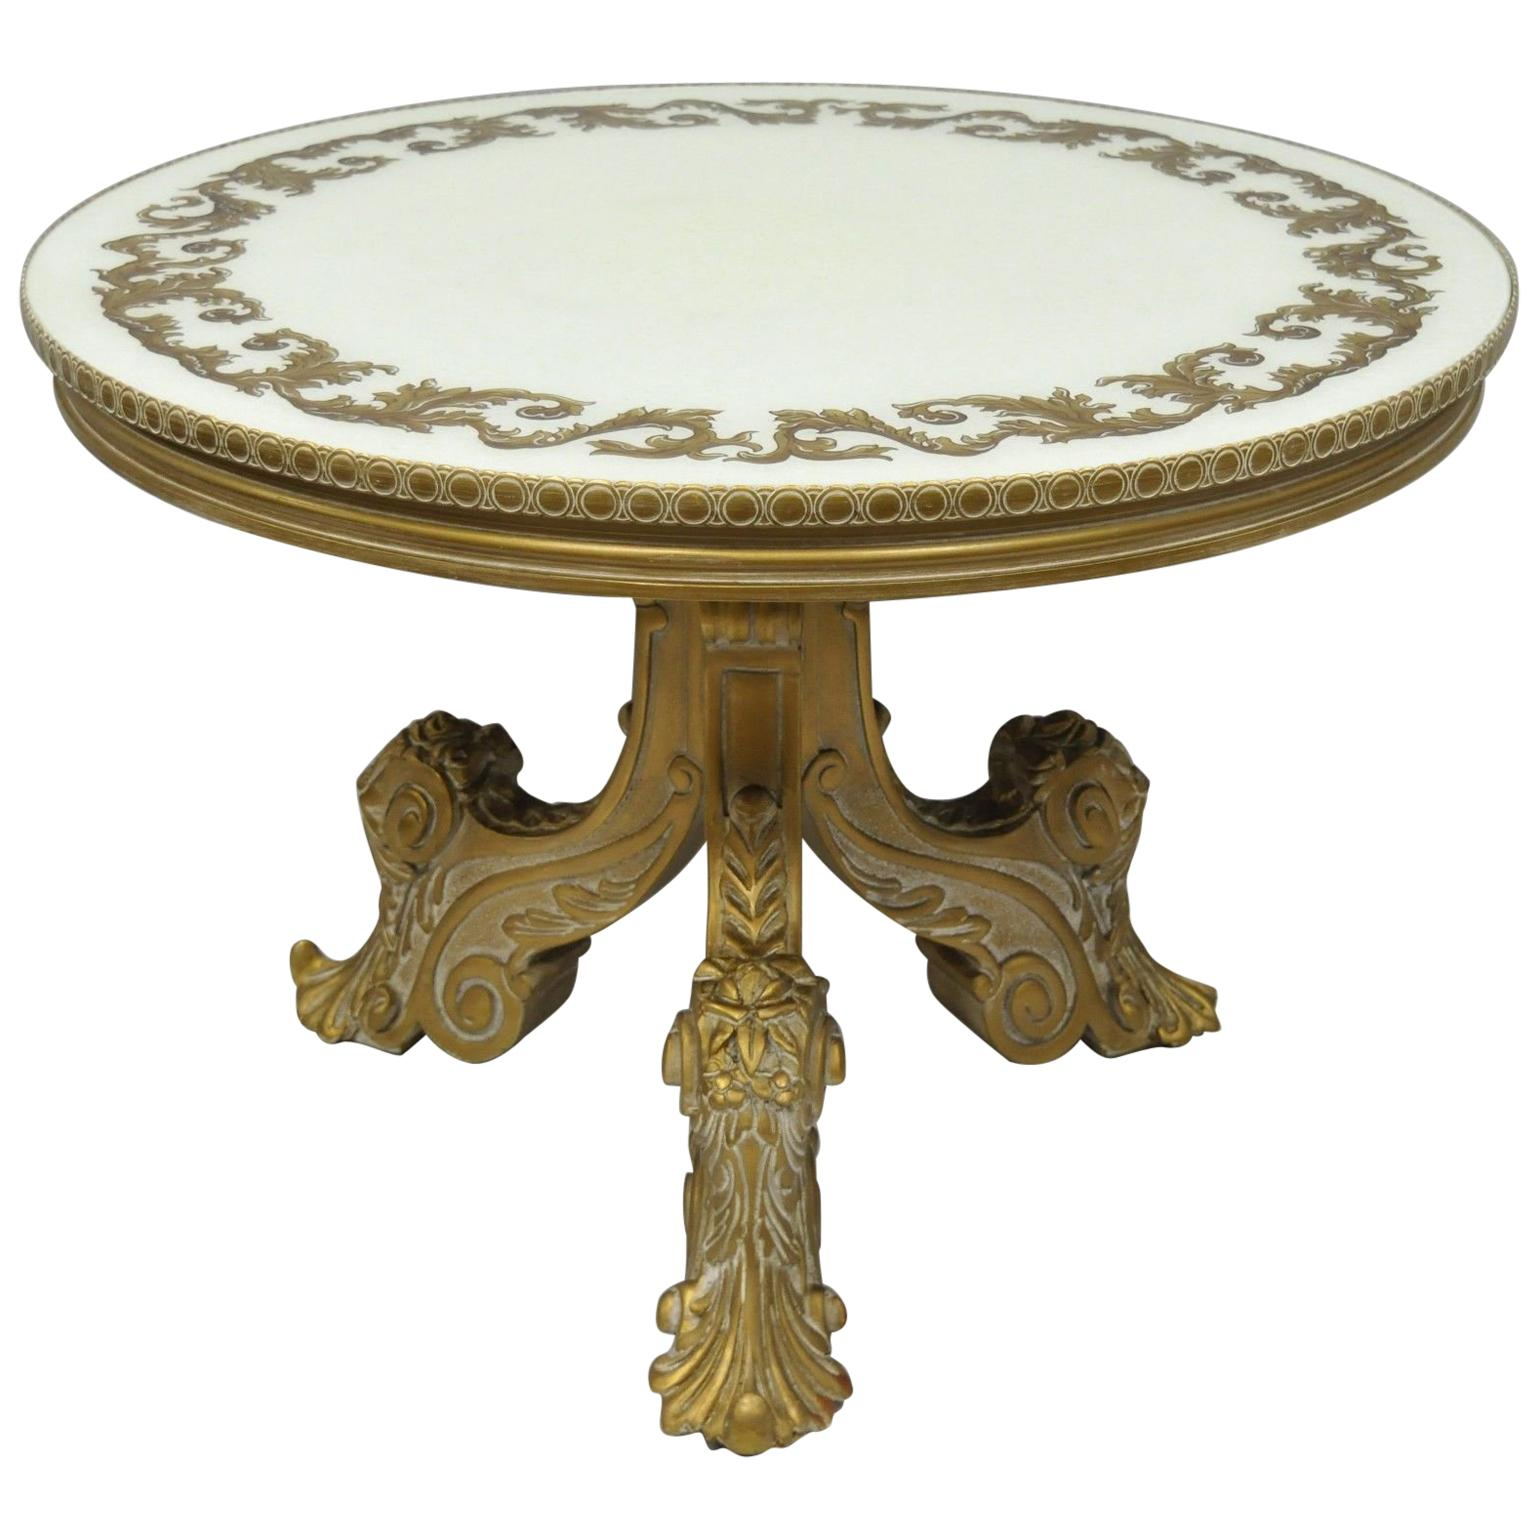 French Rococo Baroque Style Gold Italian Round Fancy Glass Top Tall Coffee Table For Sale At 1stdibs